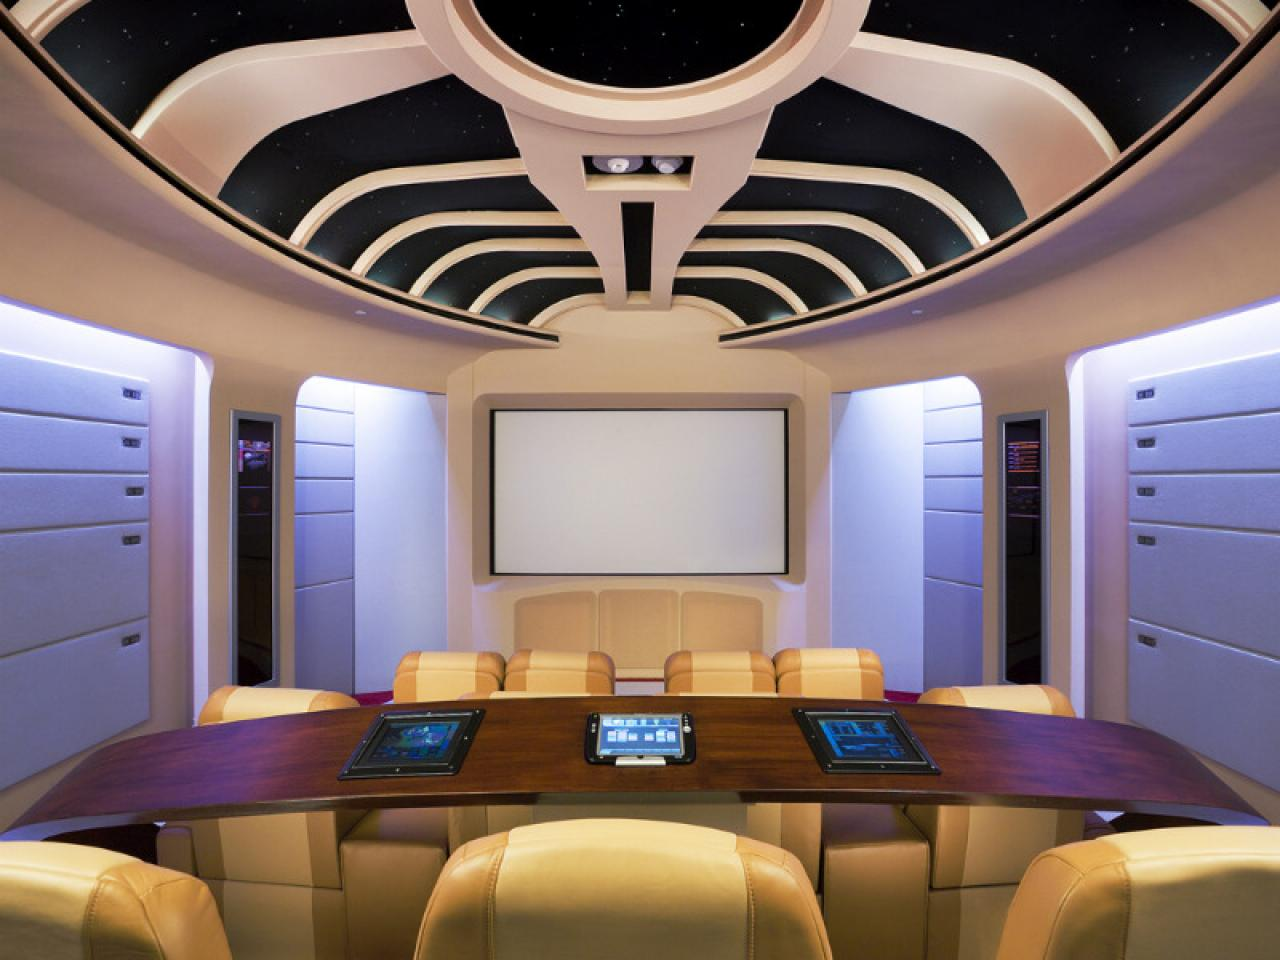 10 unique home theater themes home remodeling ideas for basements home theaters more hgtv - Home entertainment design ...